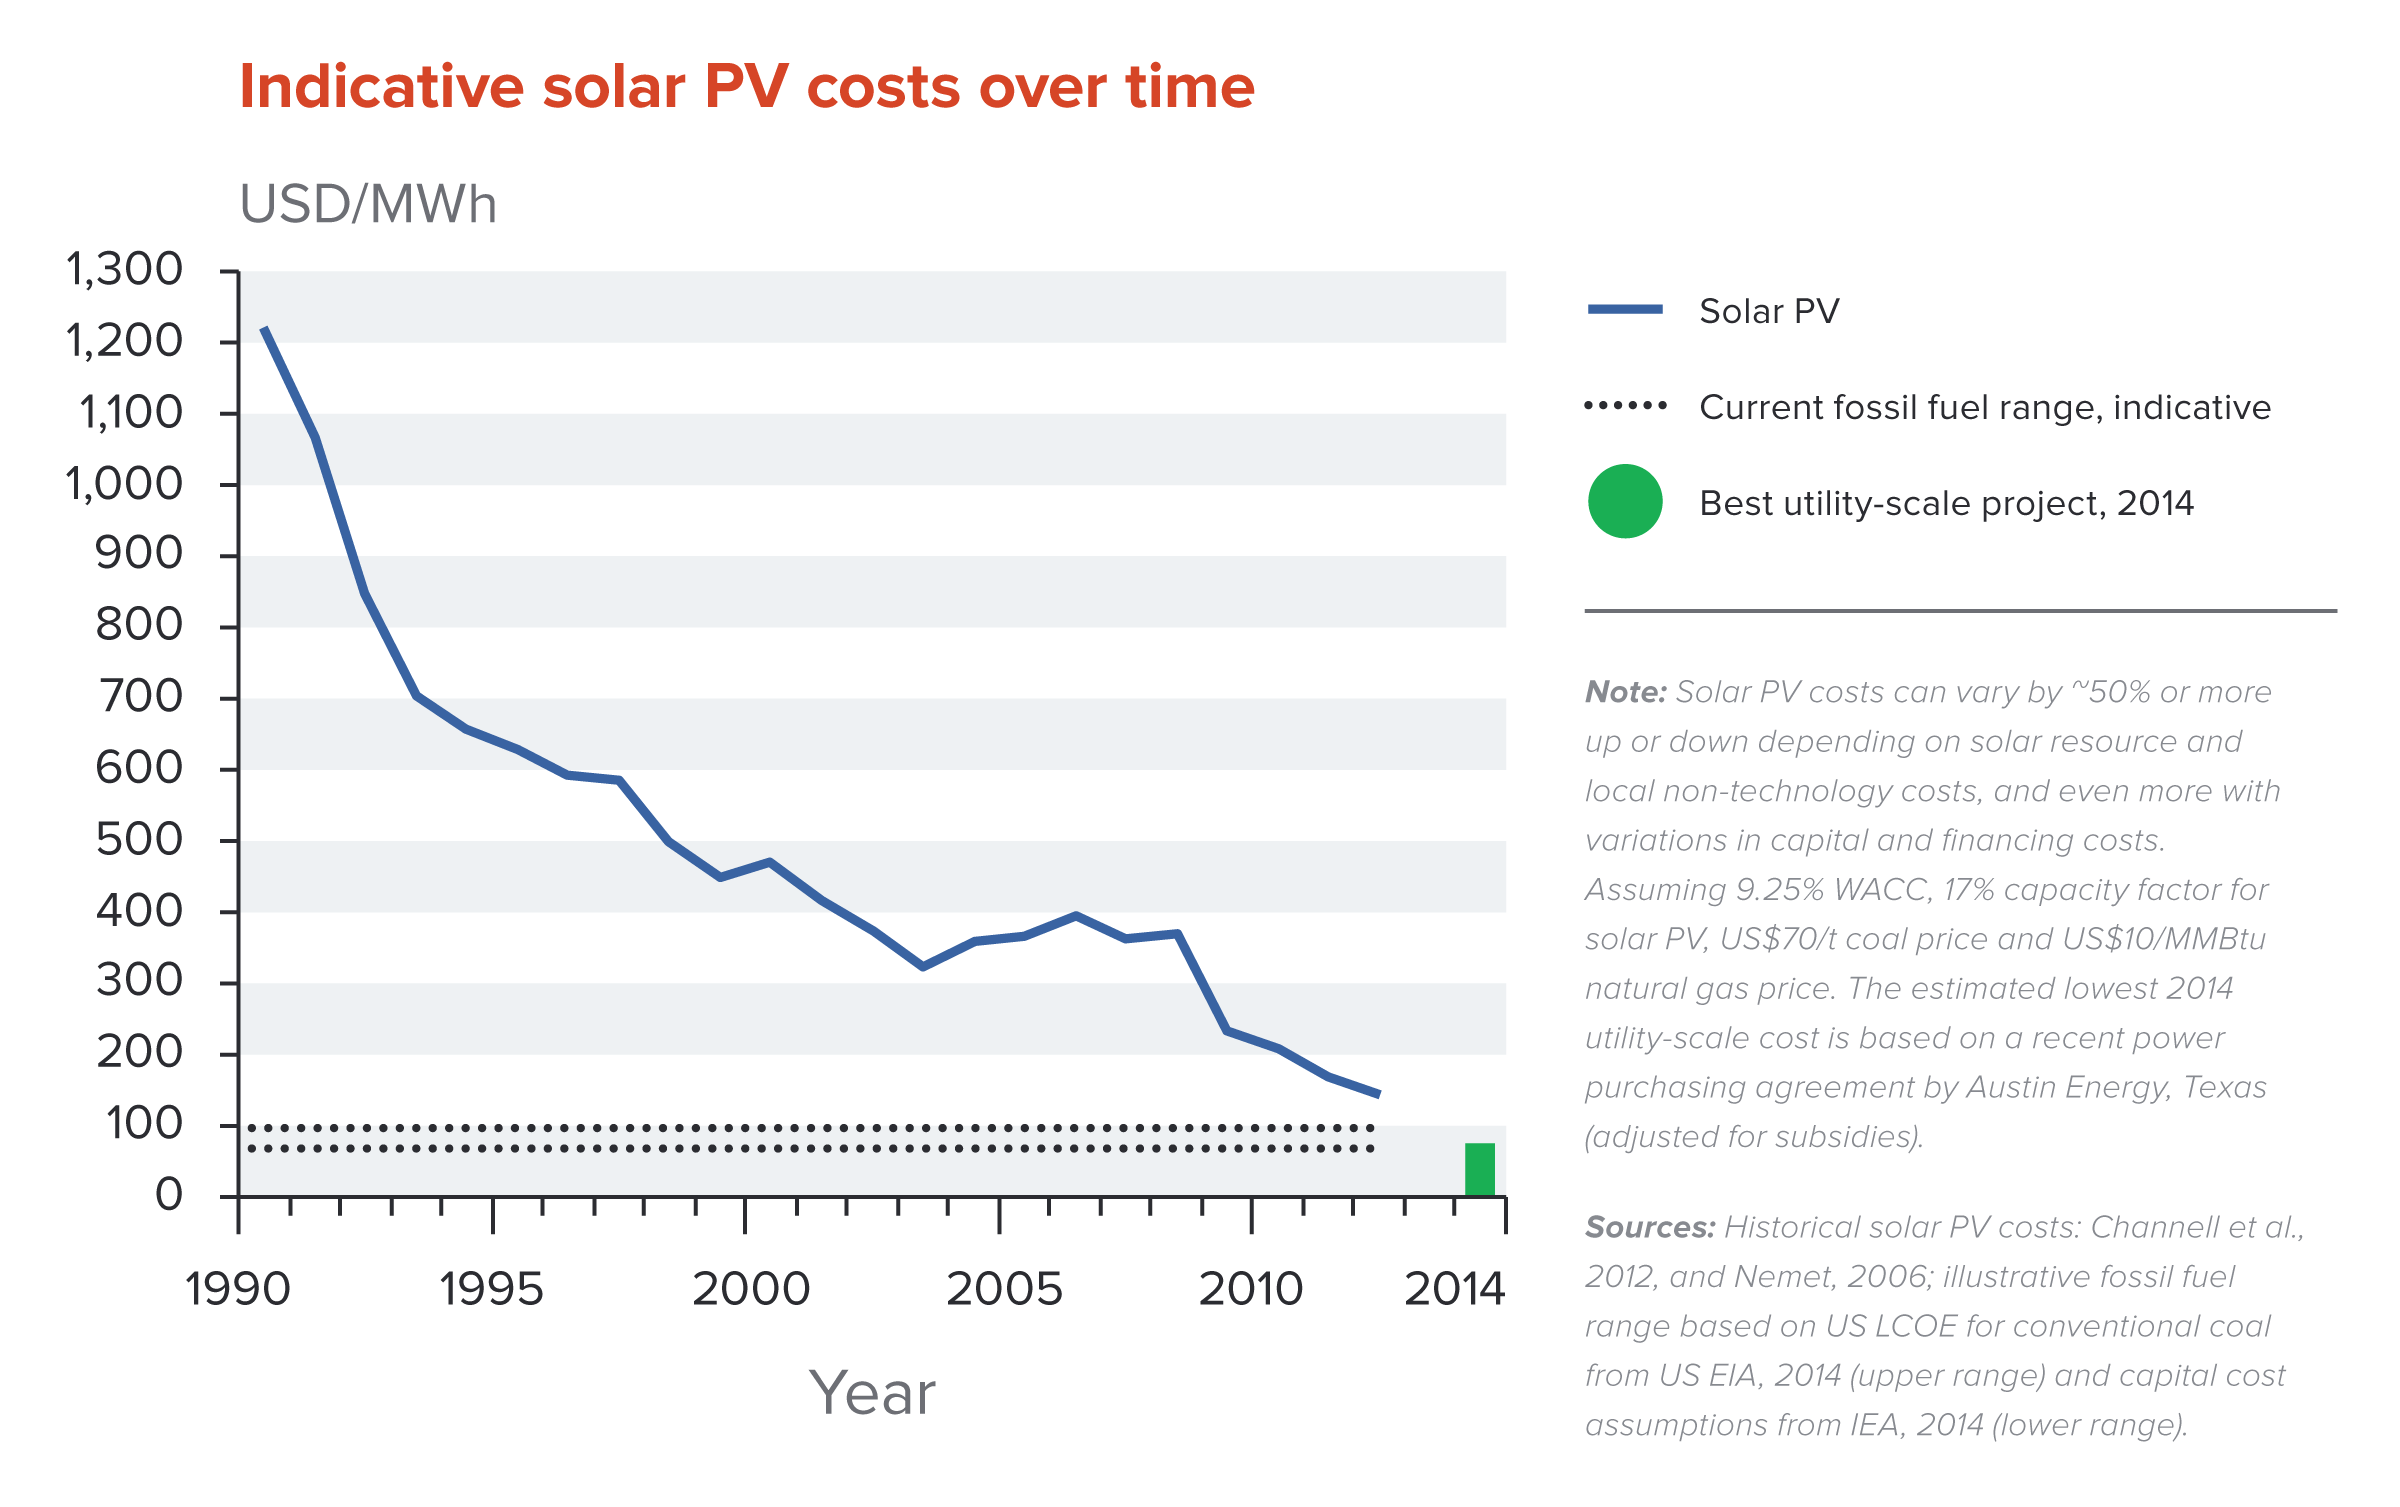 Energy Nce 2014 Natural Gas Power Plant Diagram Costs Of Solar Pv Electricity Over Time And Estimated Lowest Utility Scale Cost To Date Compared A Global Reference Level For Coal